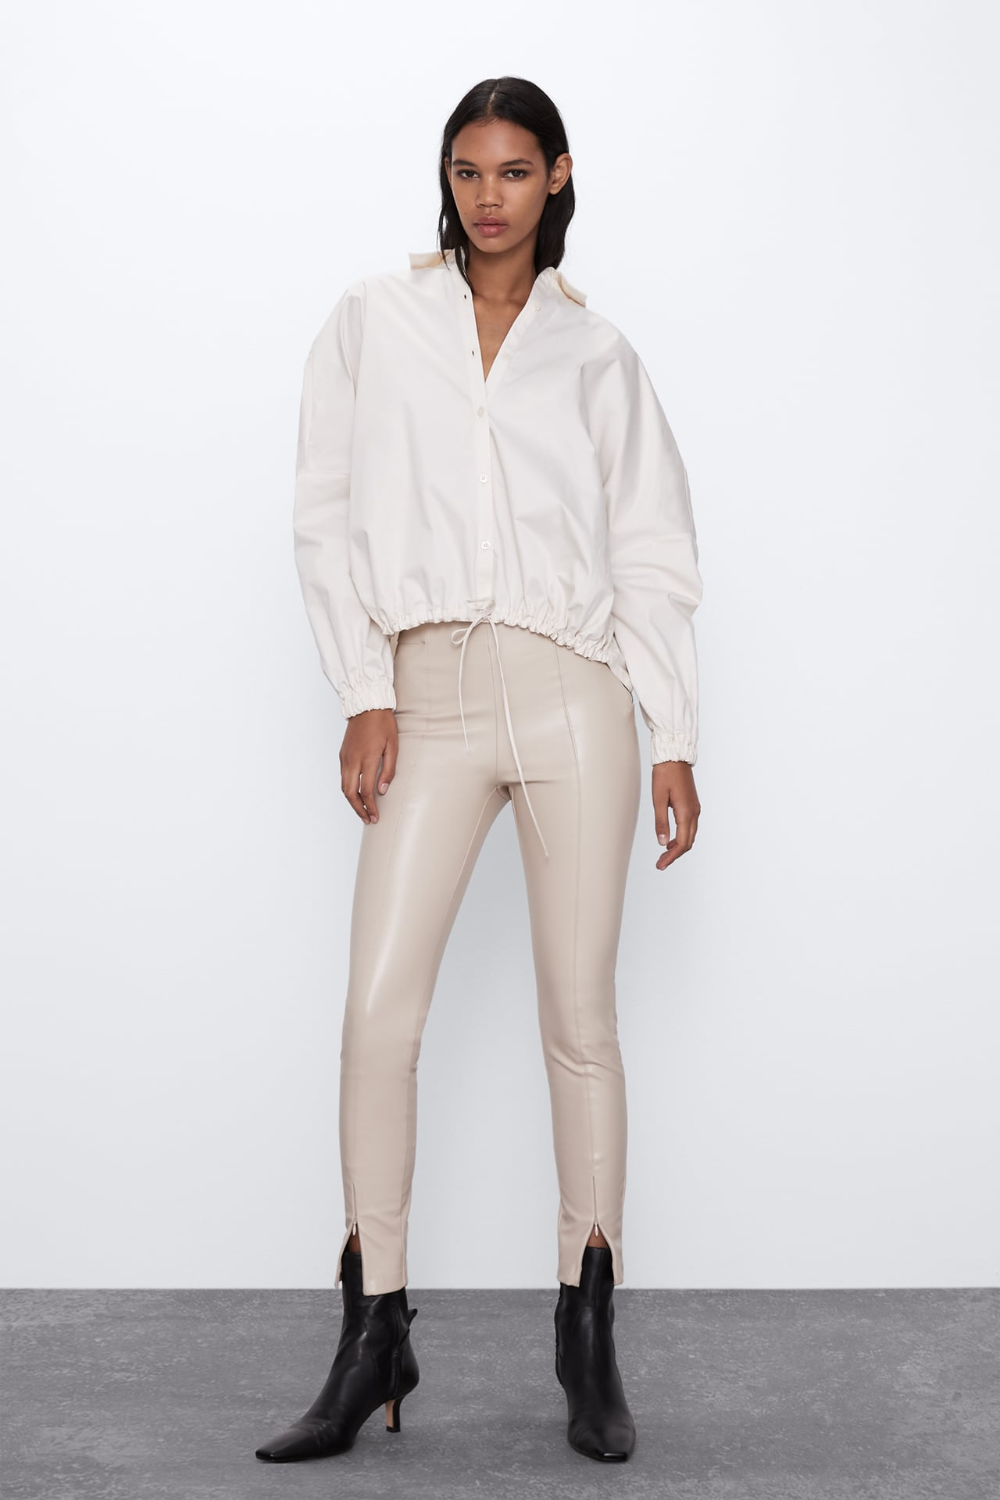 Faux Leather Leggings Zara United States In 2020 Faux Leather Leggings Leather Leggings Mid Rise Leggings